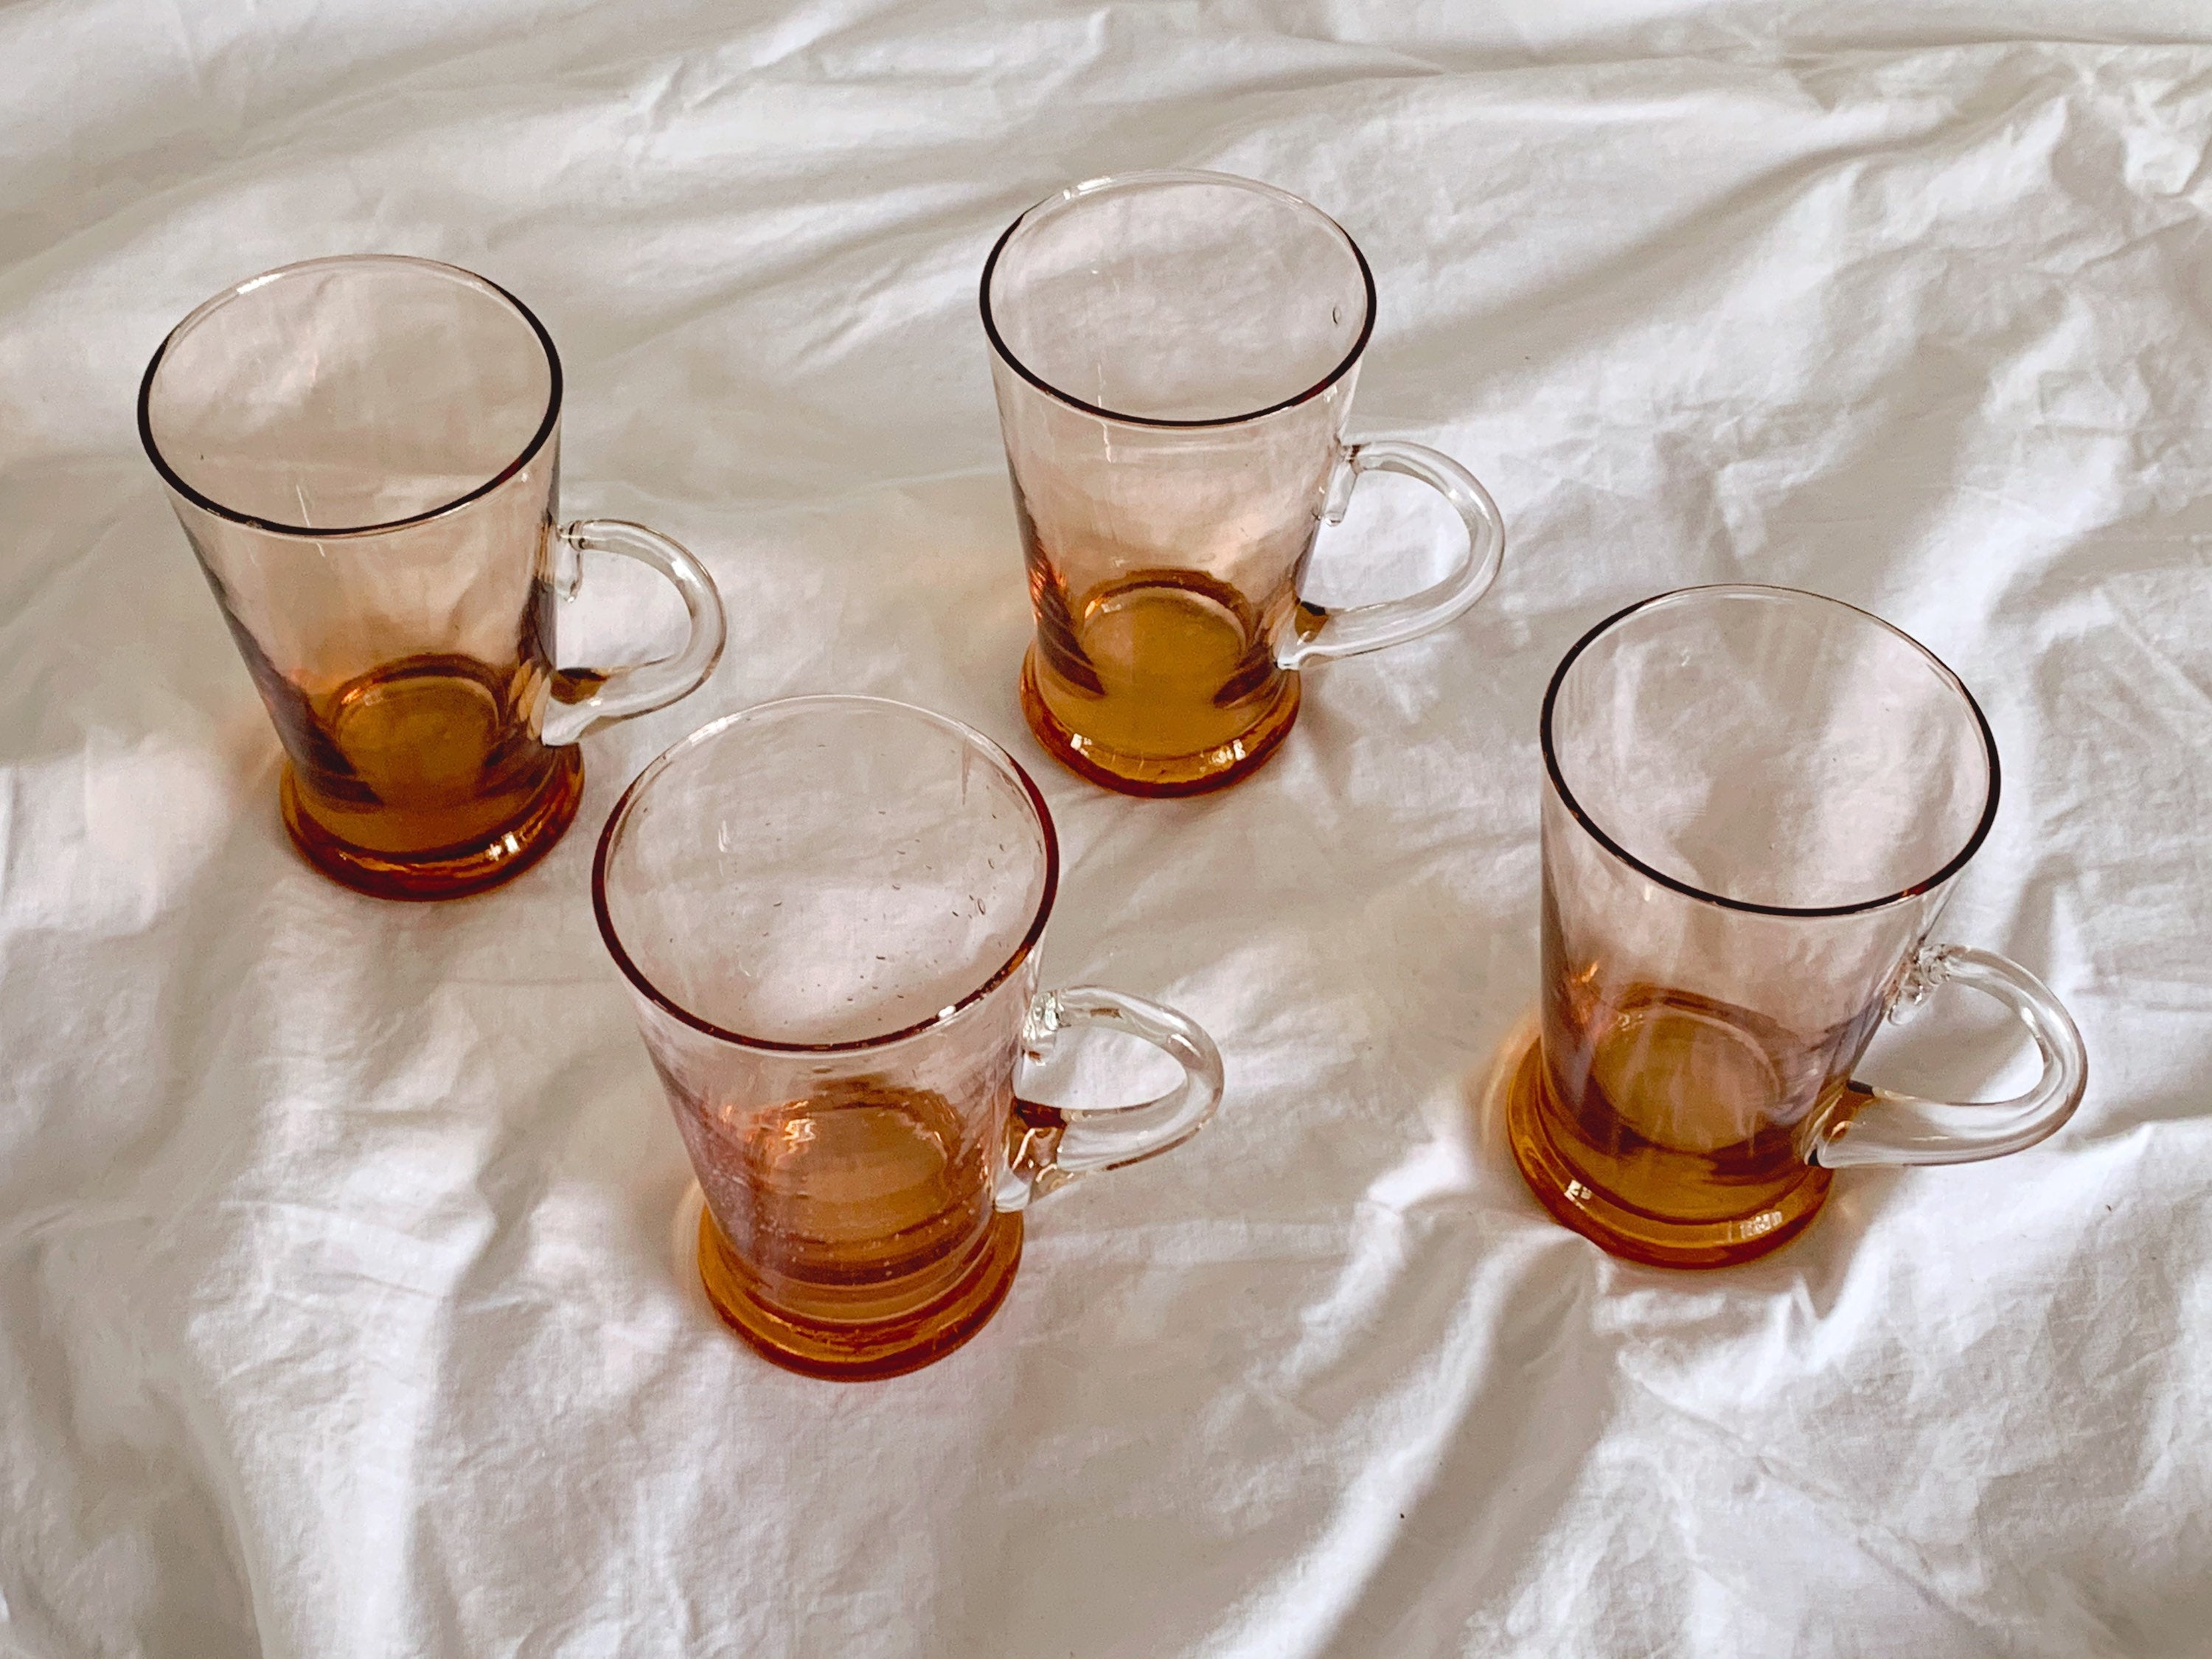 Vintage Hand Blown Glass Iced Coffee Cups with Applied Handle | Beer Pint and Water Glasses in Gradient Orange